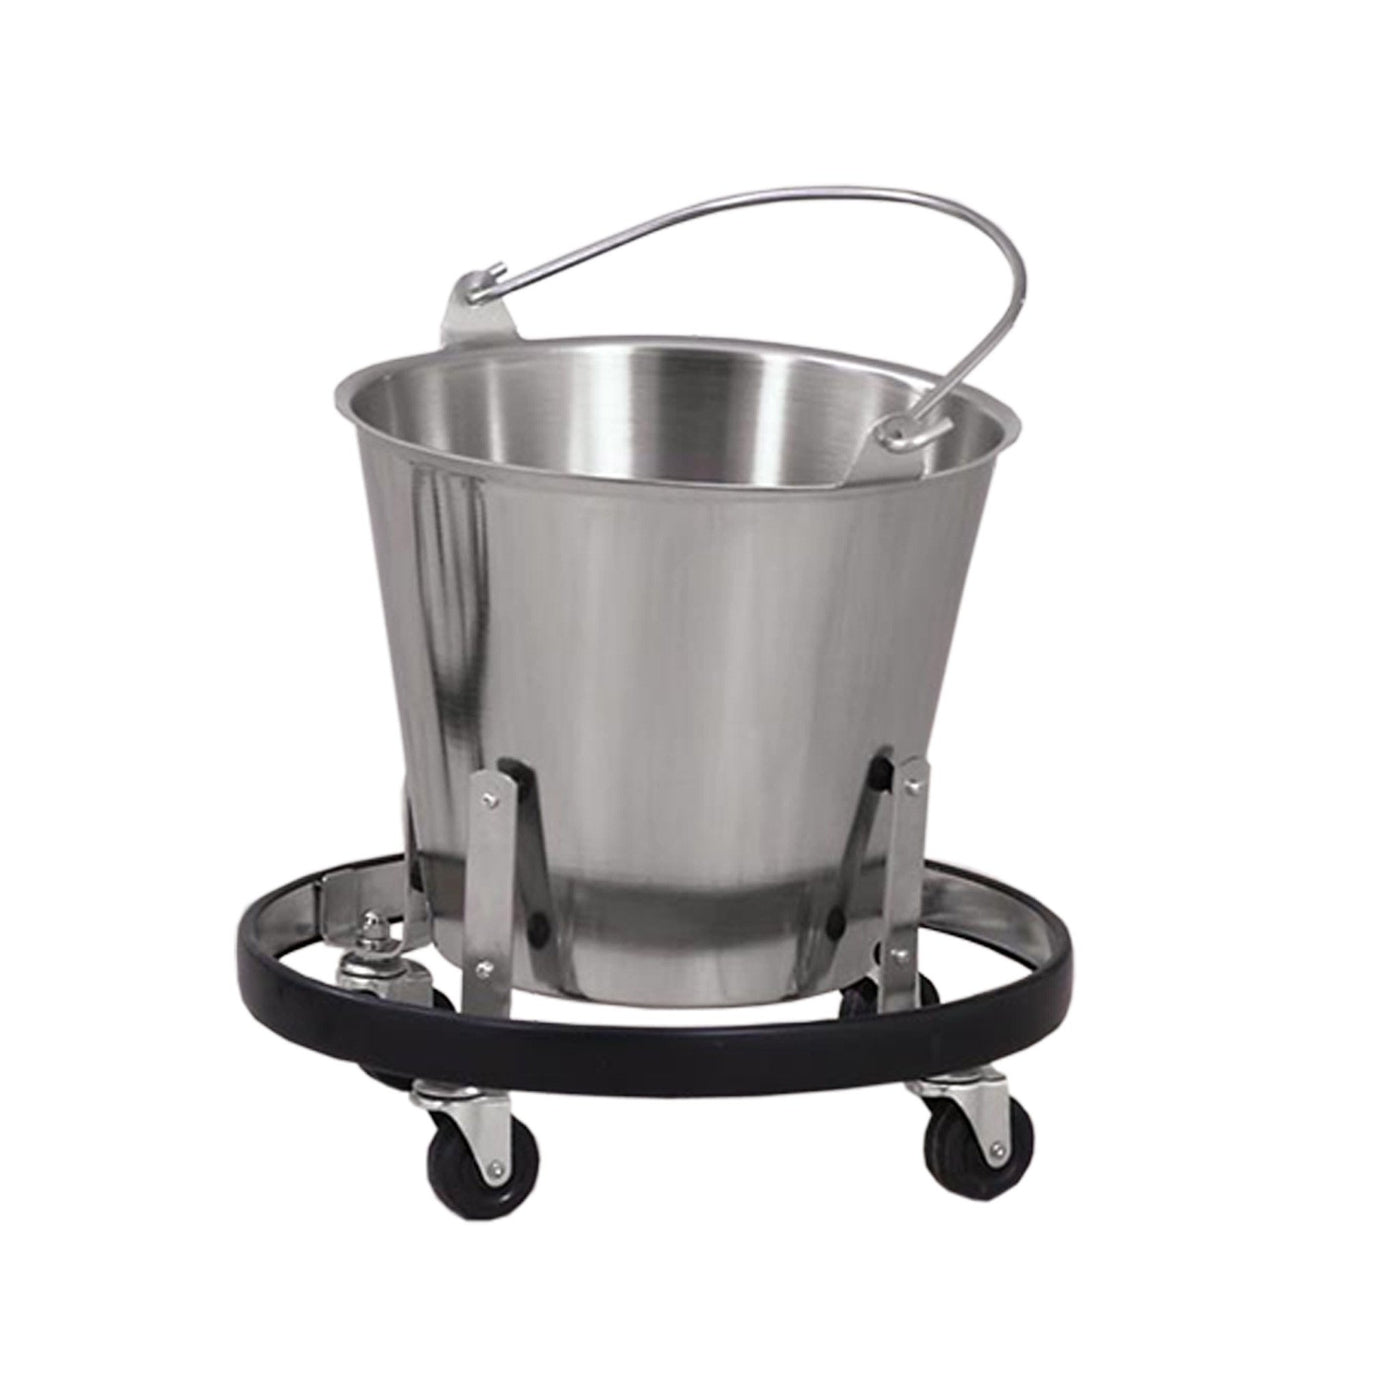 Mobile Stand for Drain Pails-Laboratory Accessory-Mortech Manufacturing Company Inc. Quality Stainless Steel Autopsy, Morgue, Funeral Home, Necropsy, Veterinary / Anatomy, Dissection Equipment and Accessories